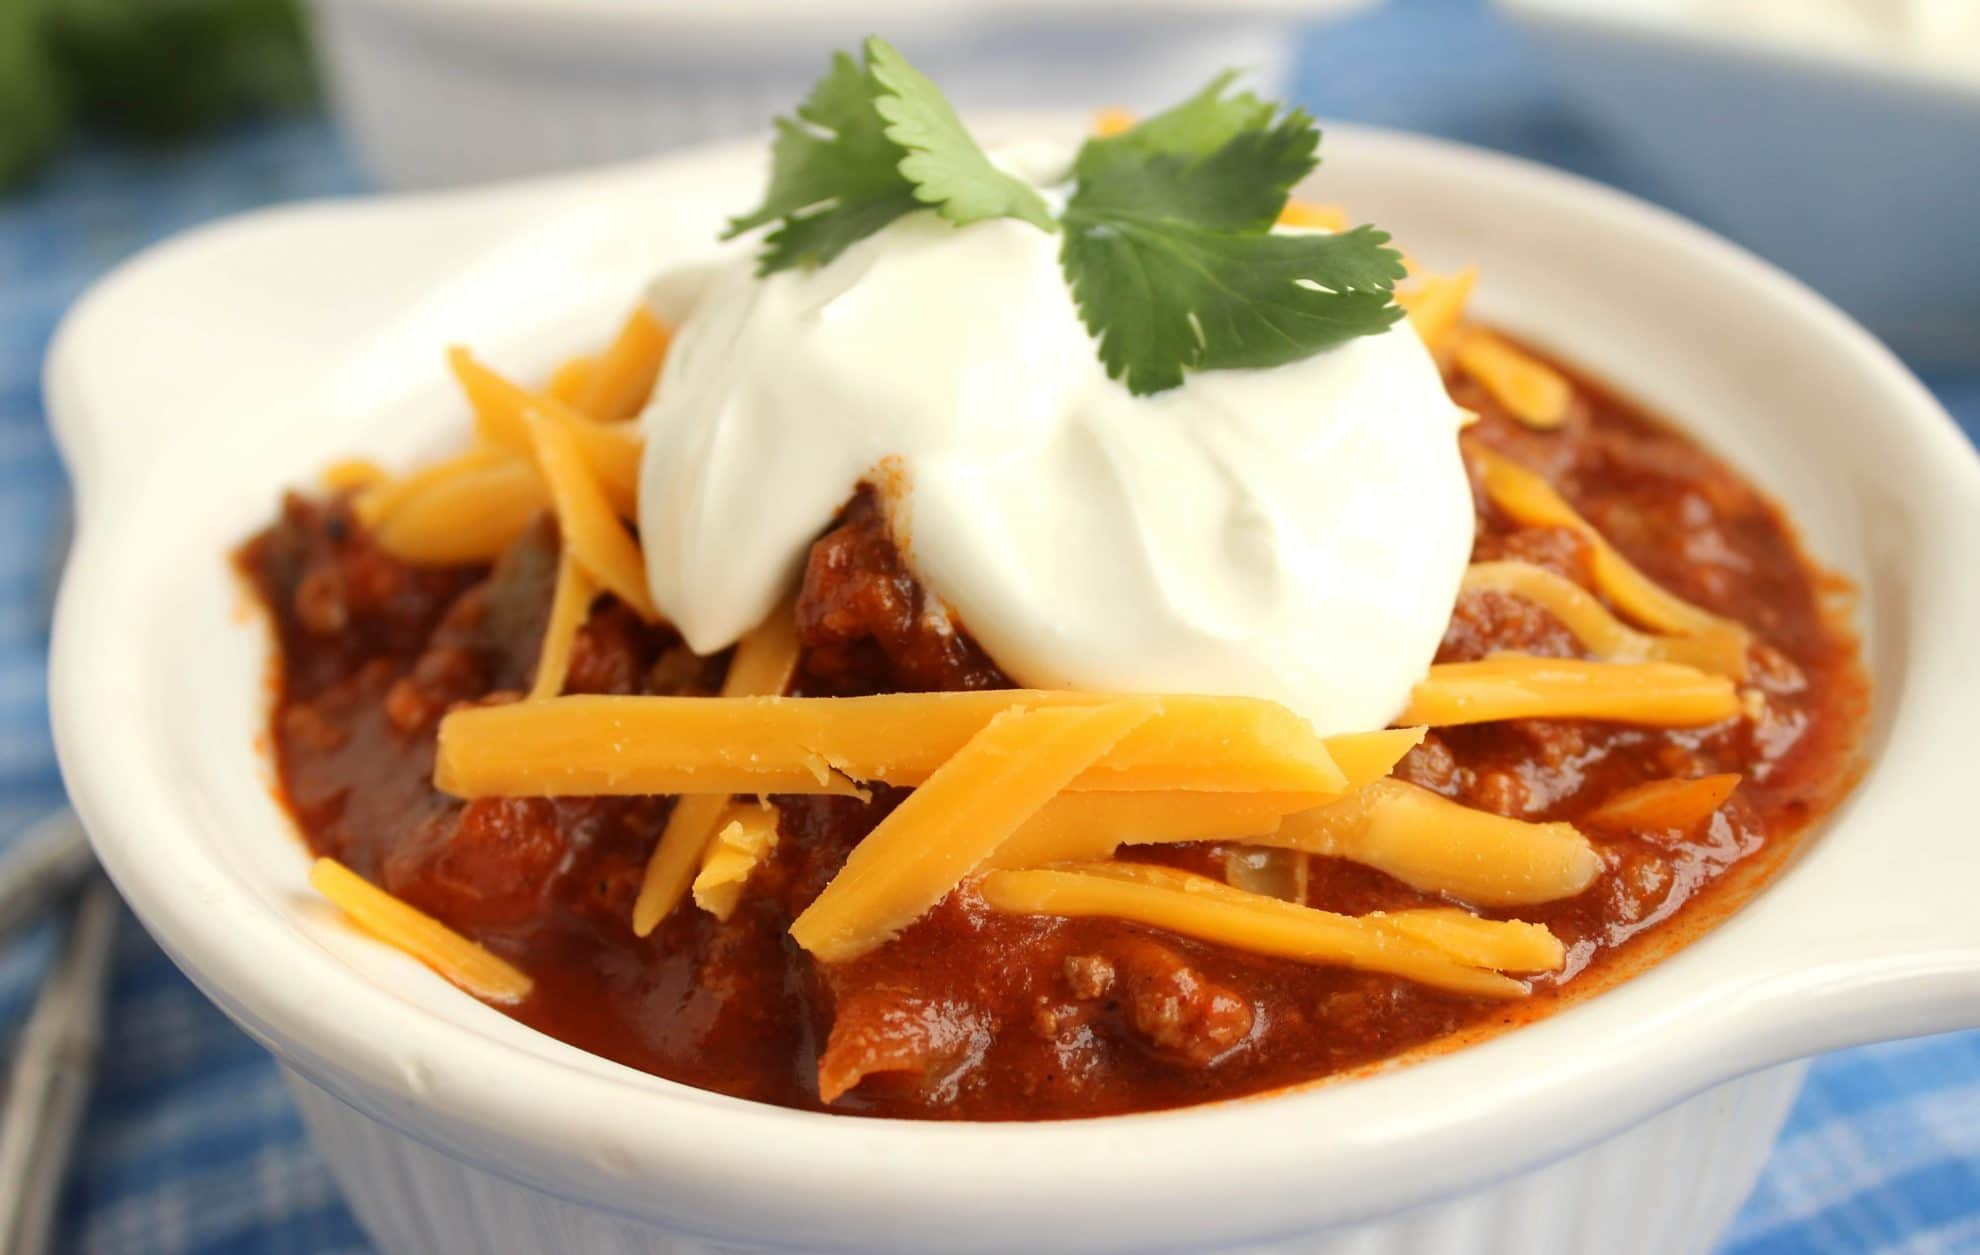 ... thesuburbansoapbox.com/2014/01/31/sweet-and-spicy-slow-cooker-chili